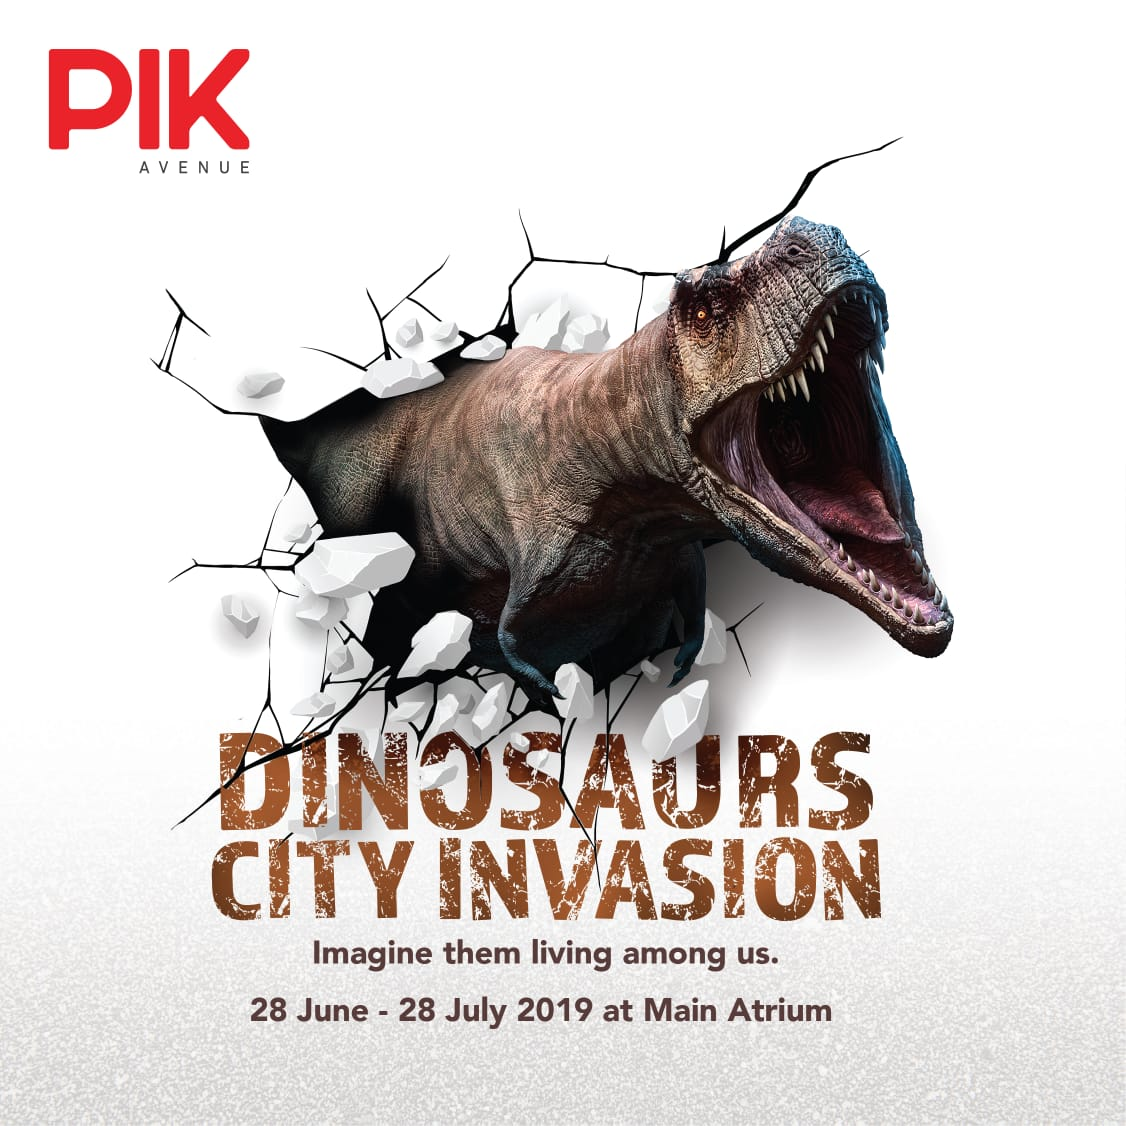 DINOSAURS CITY INVASION - Prepare to be amazed on a heart pounding adventure into the deep past this June 28th - July 28th at Main Atrium PIK avenue with the dinosaurs